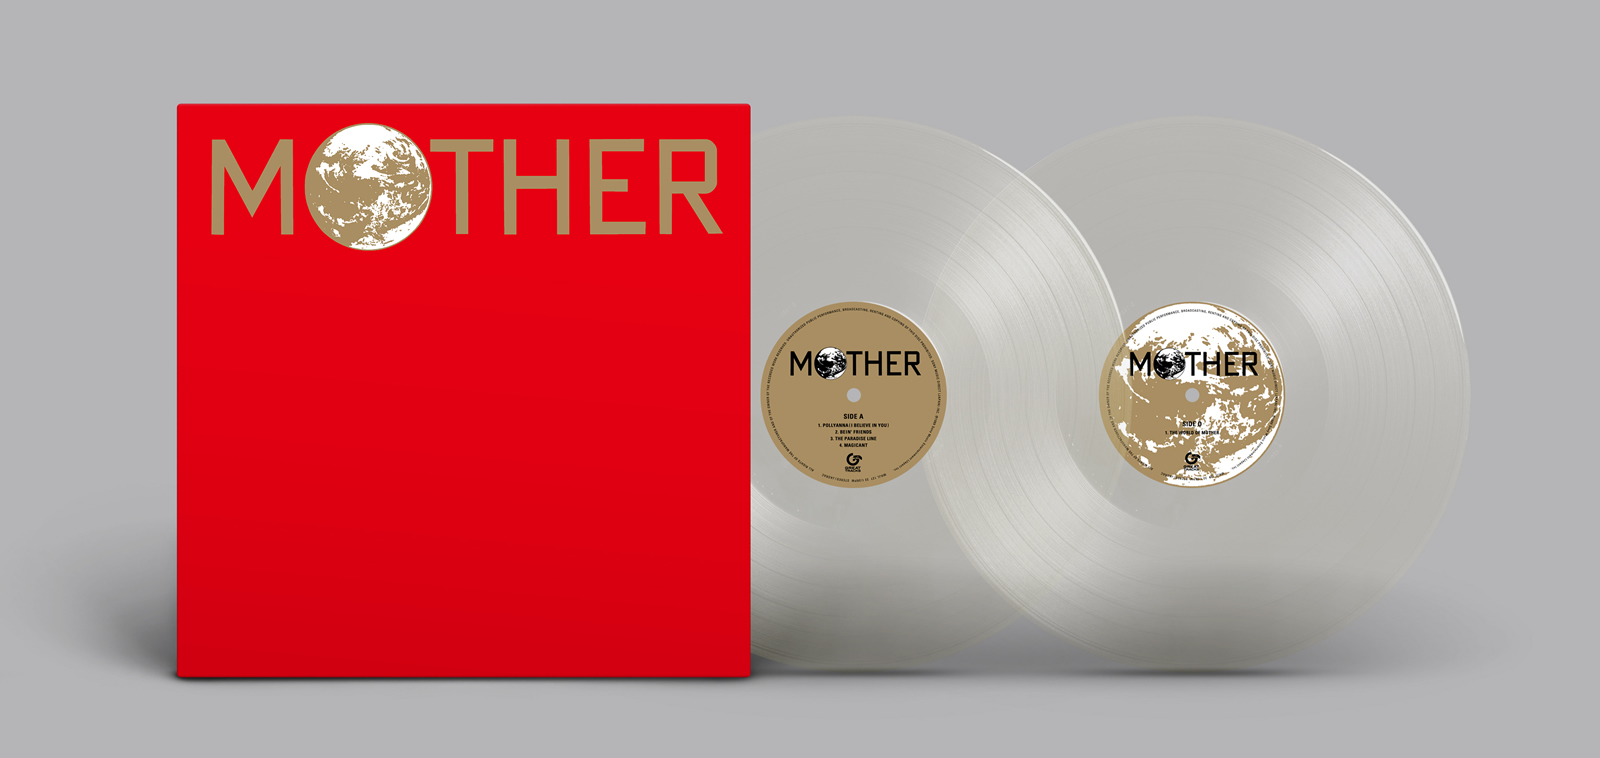 「MOTHER」